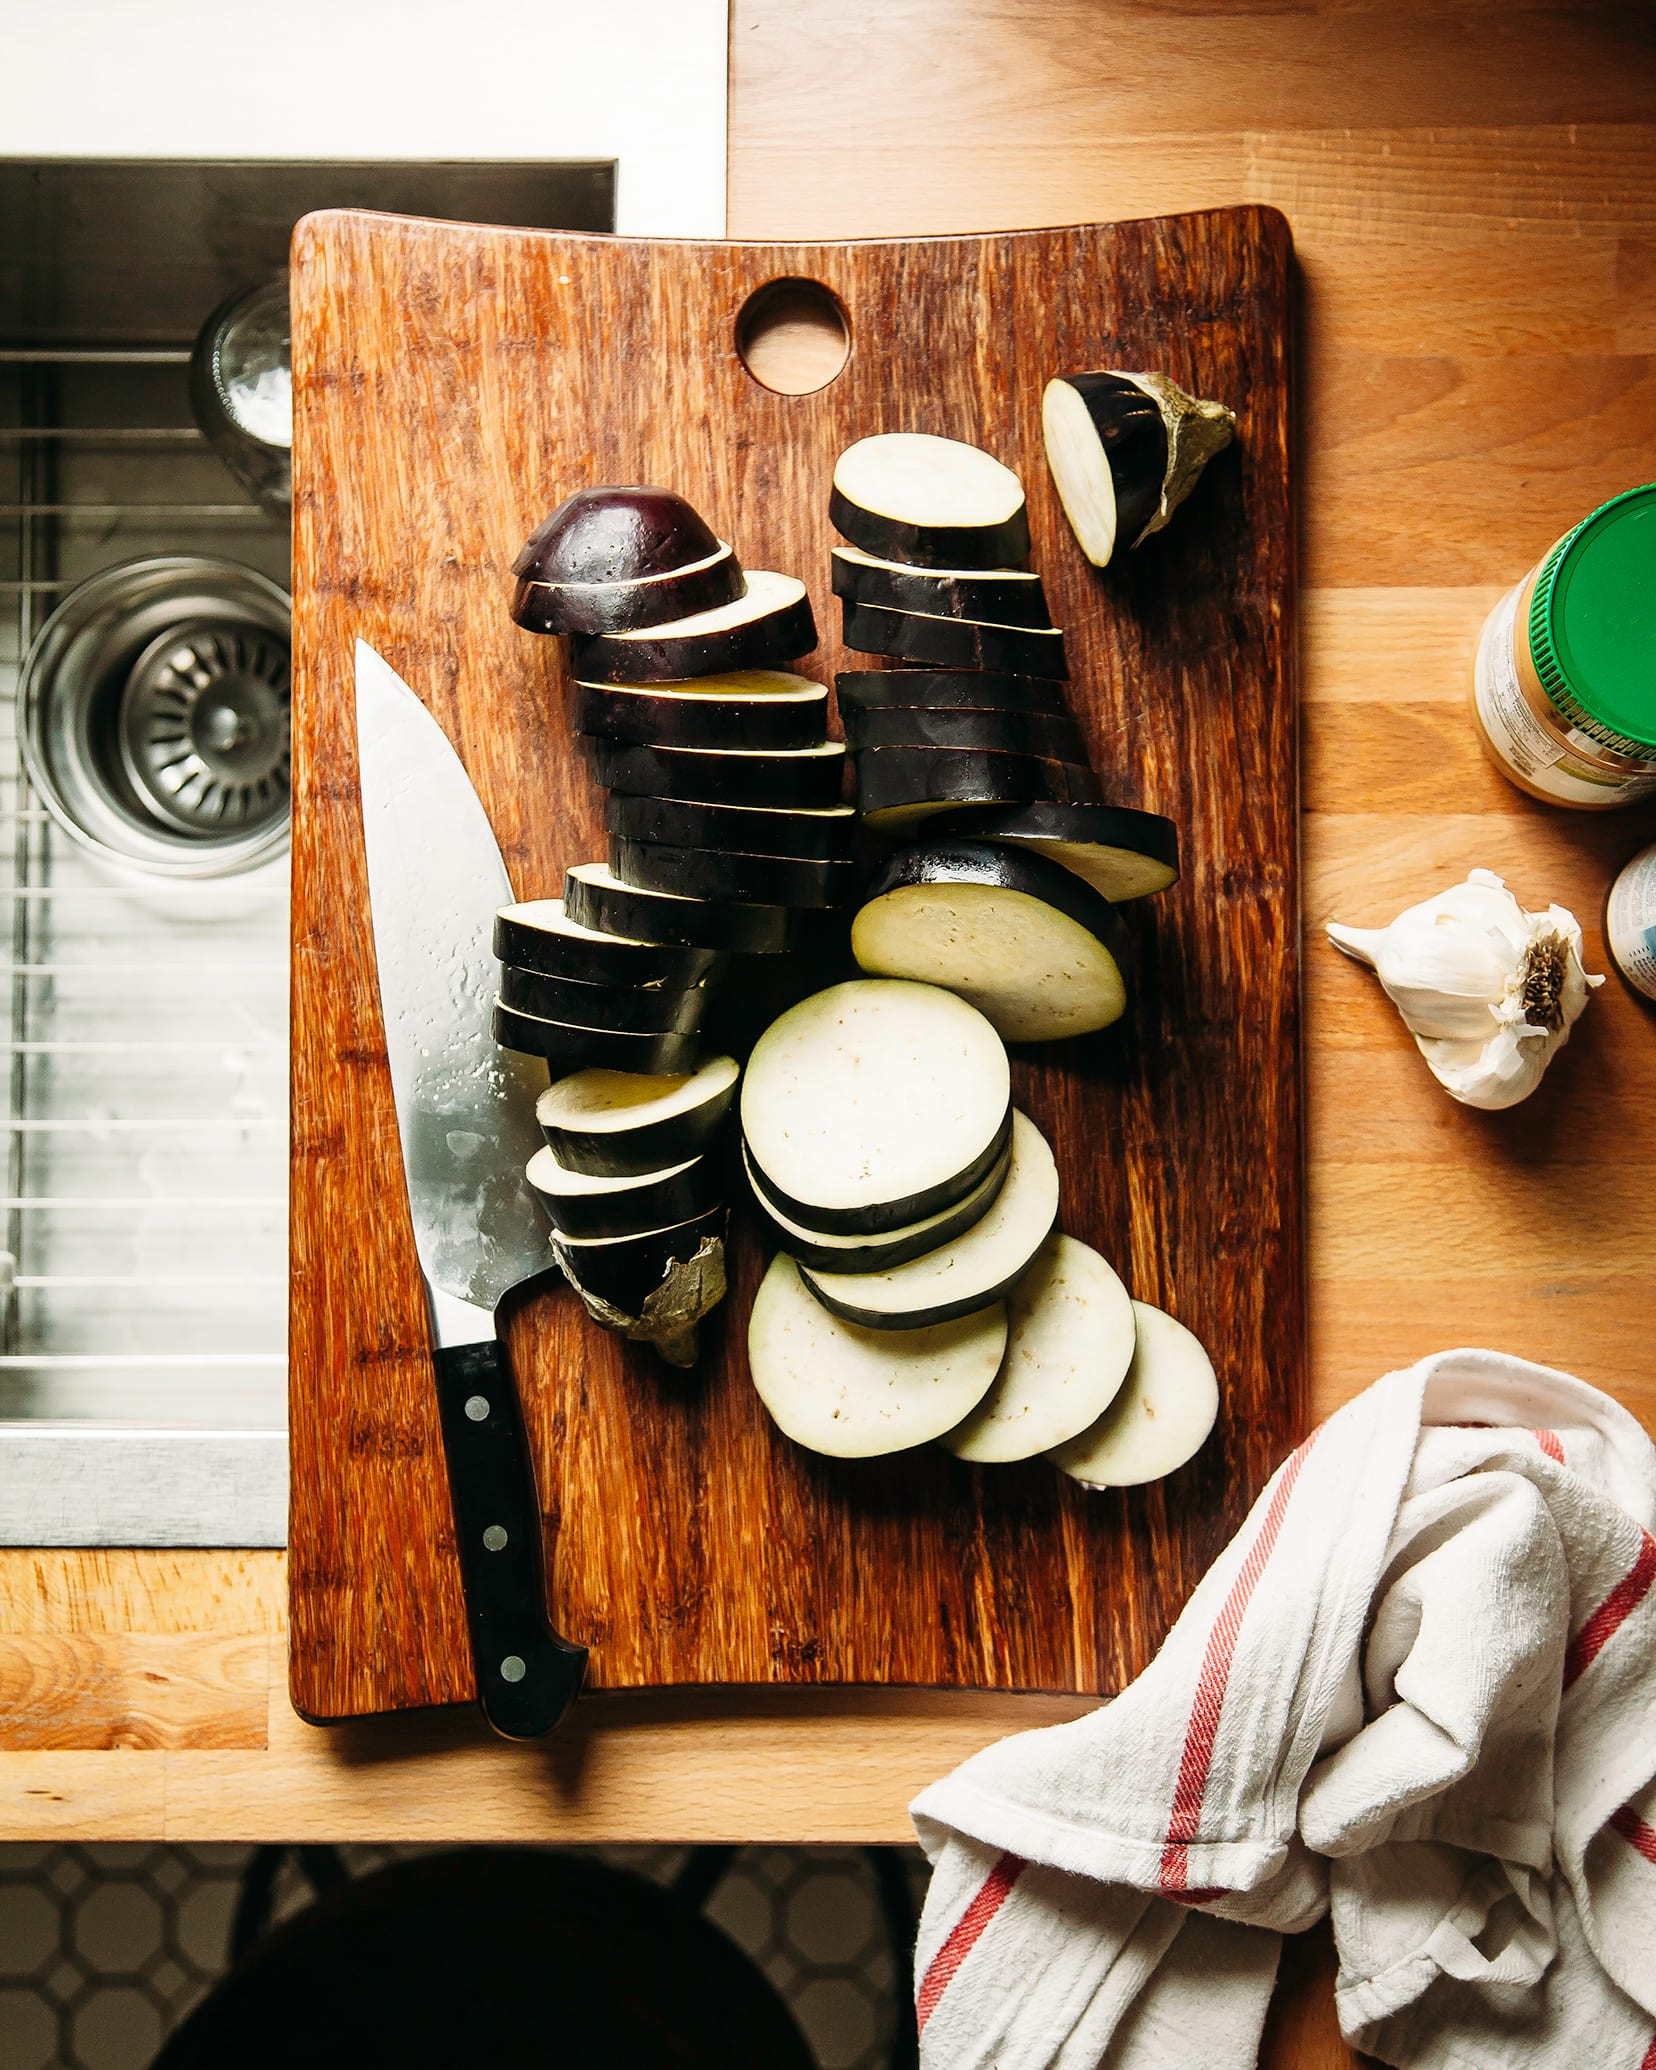 Sliced raw eggplant on a wood cutting board with a chef's knife to the side.